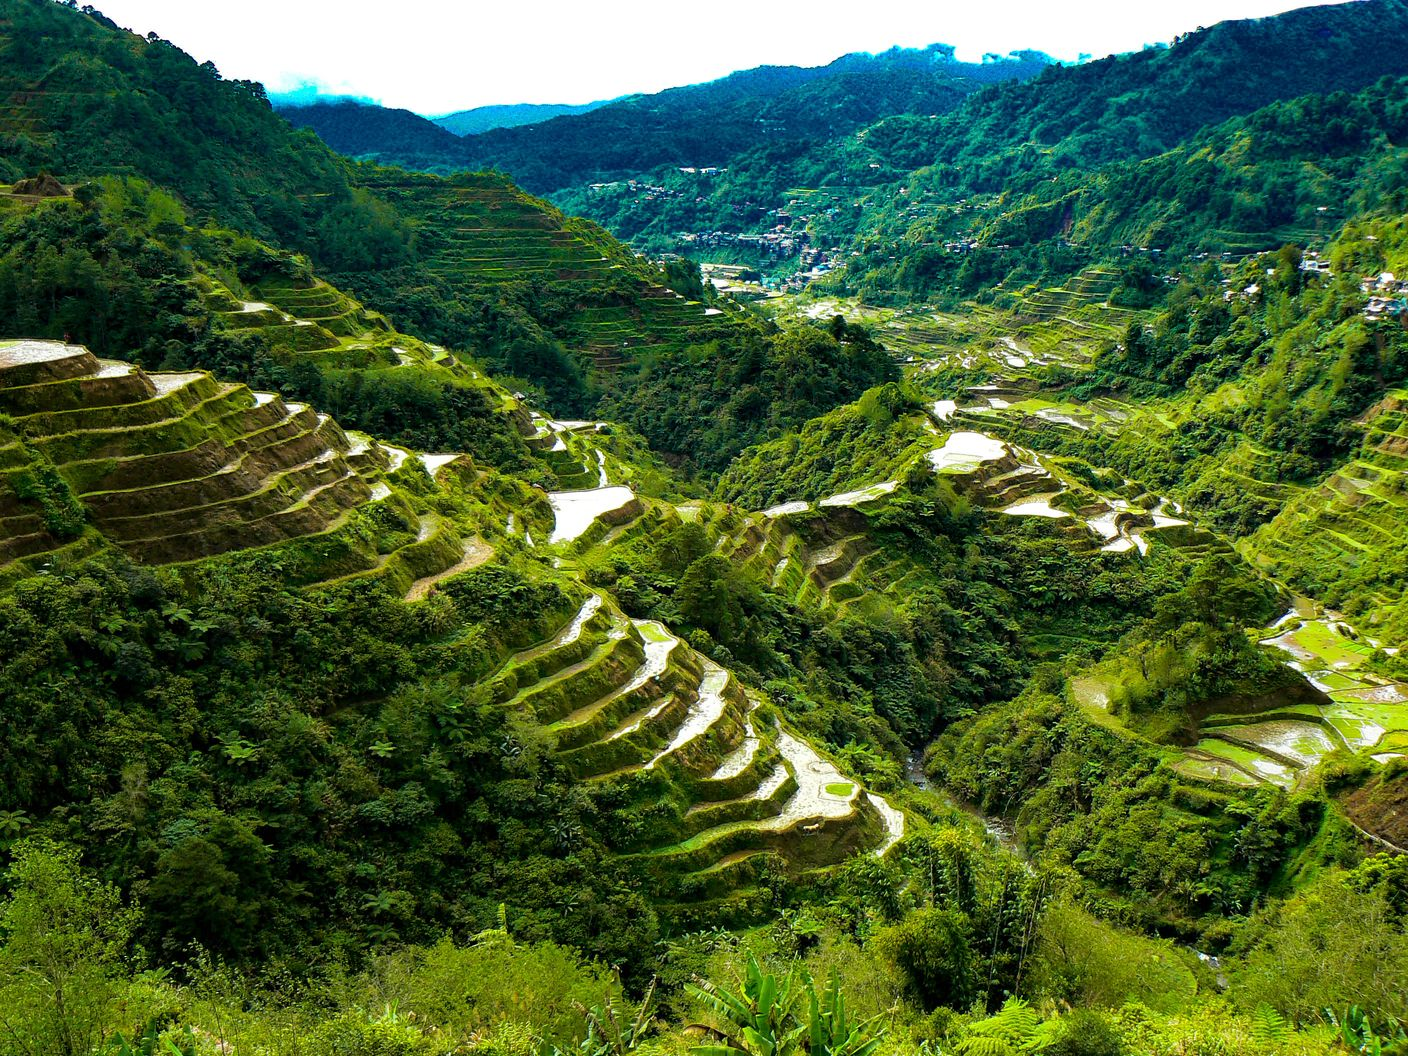 View of terraced paddy fields carved along mountainsides in Ifugao, Philippines